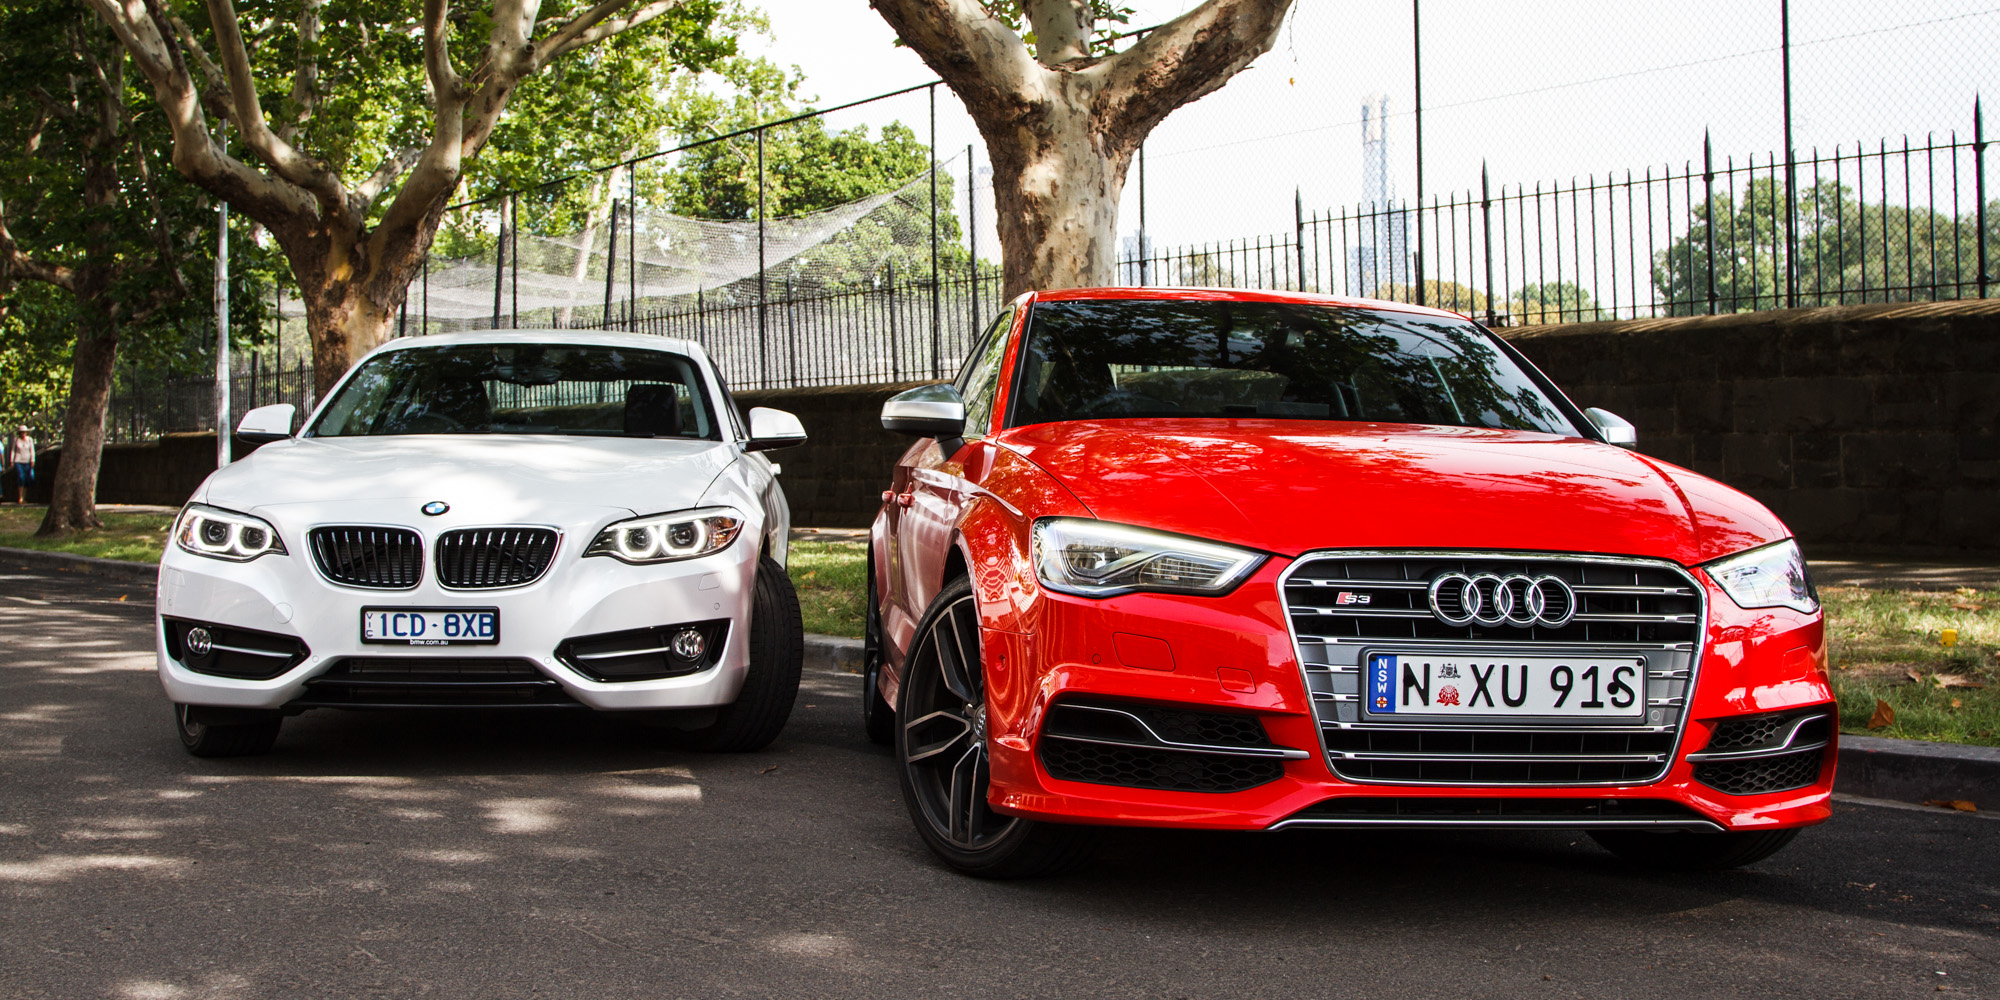 Audi S3 Sedan V Bmw 228i Coupe Comparison Review